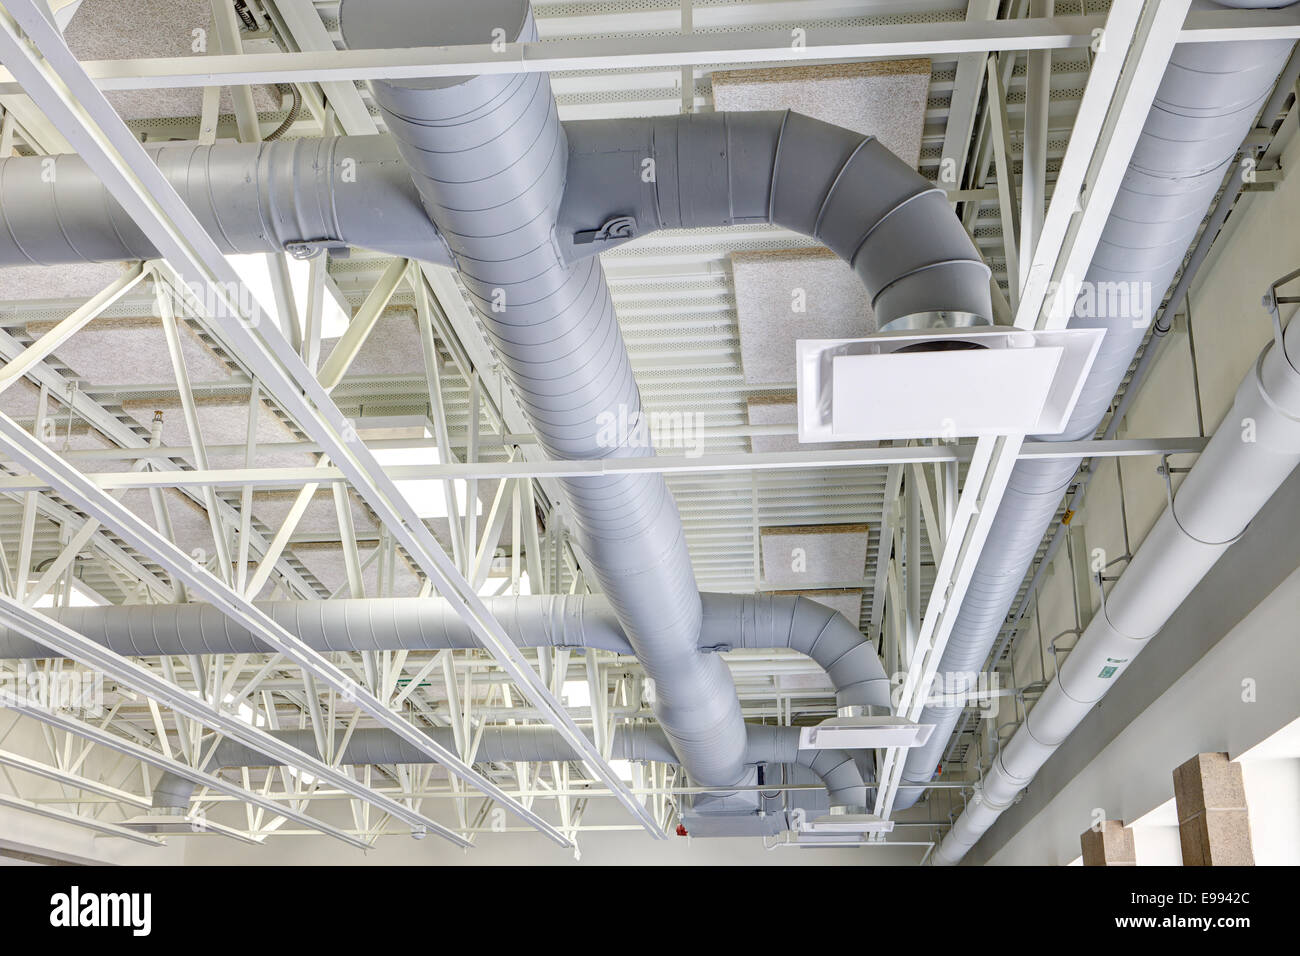 Hvac Duct Work In A Modern Building Stock Photo 74574148